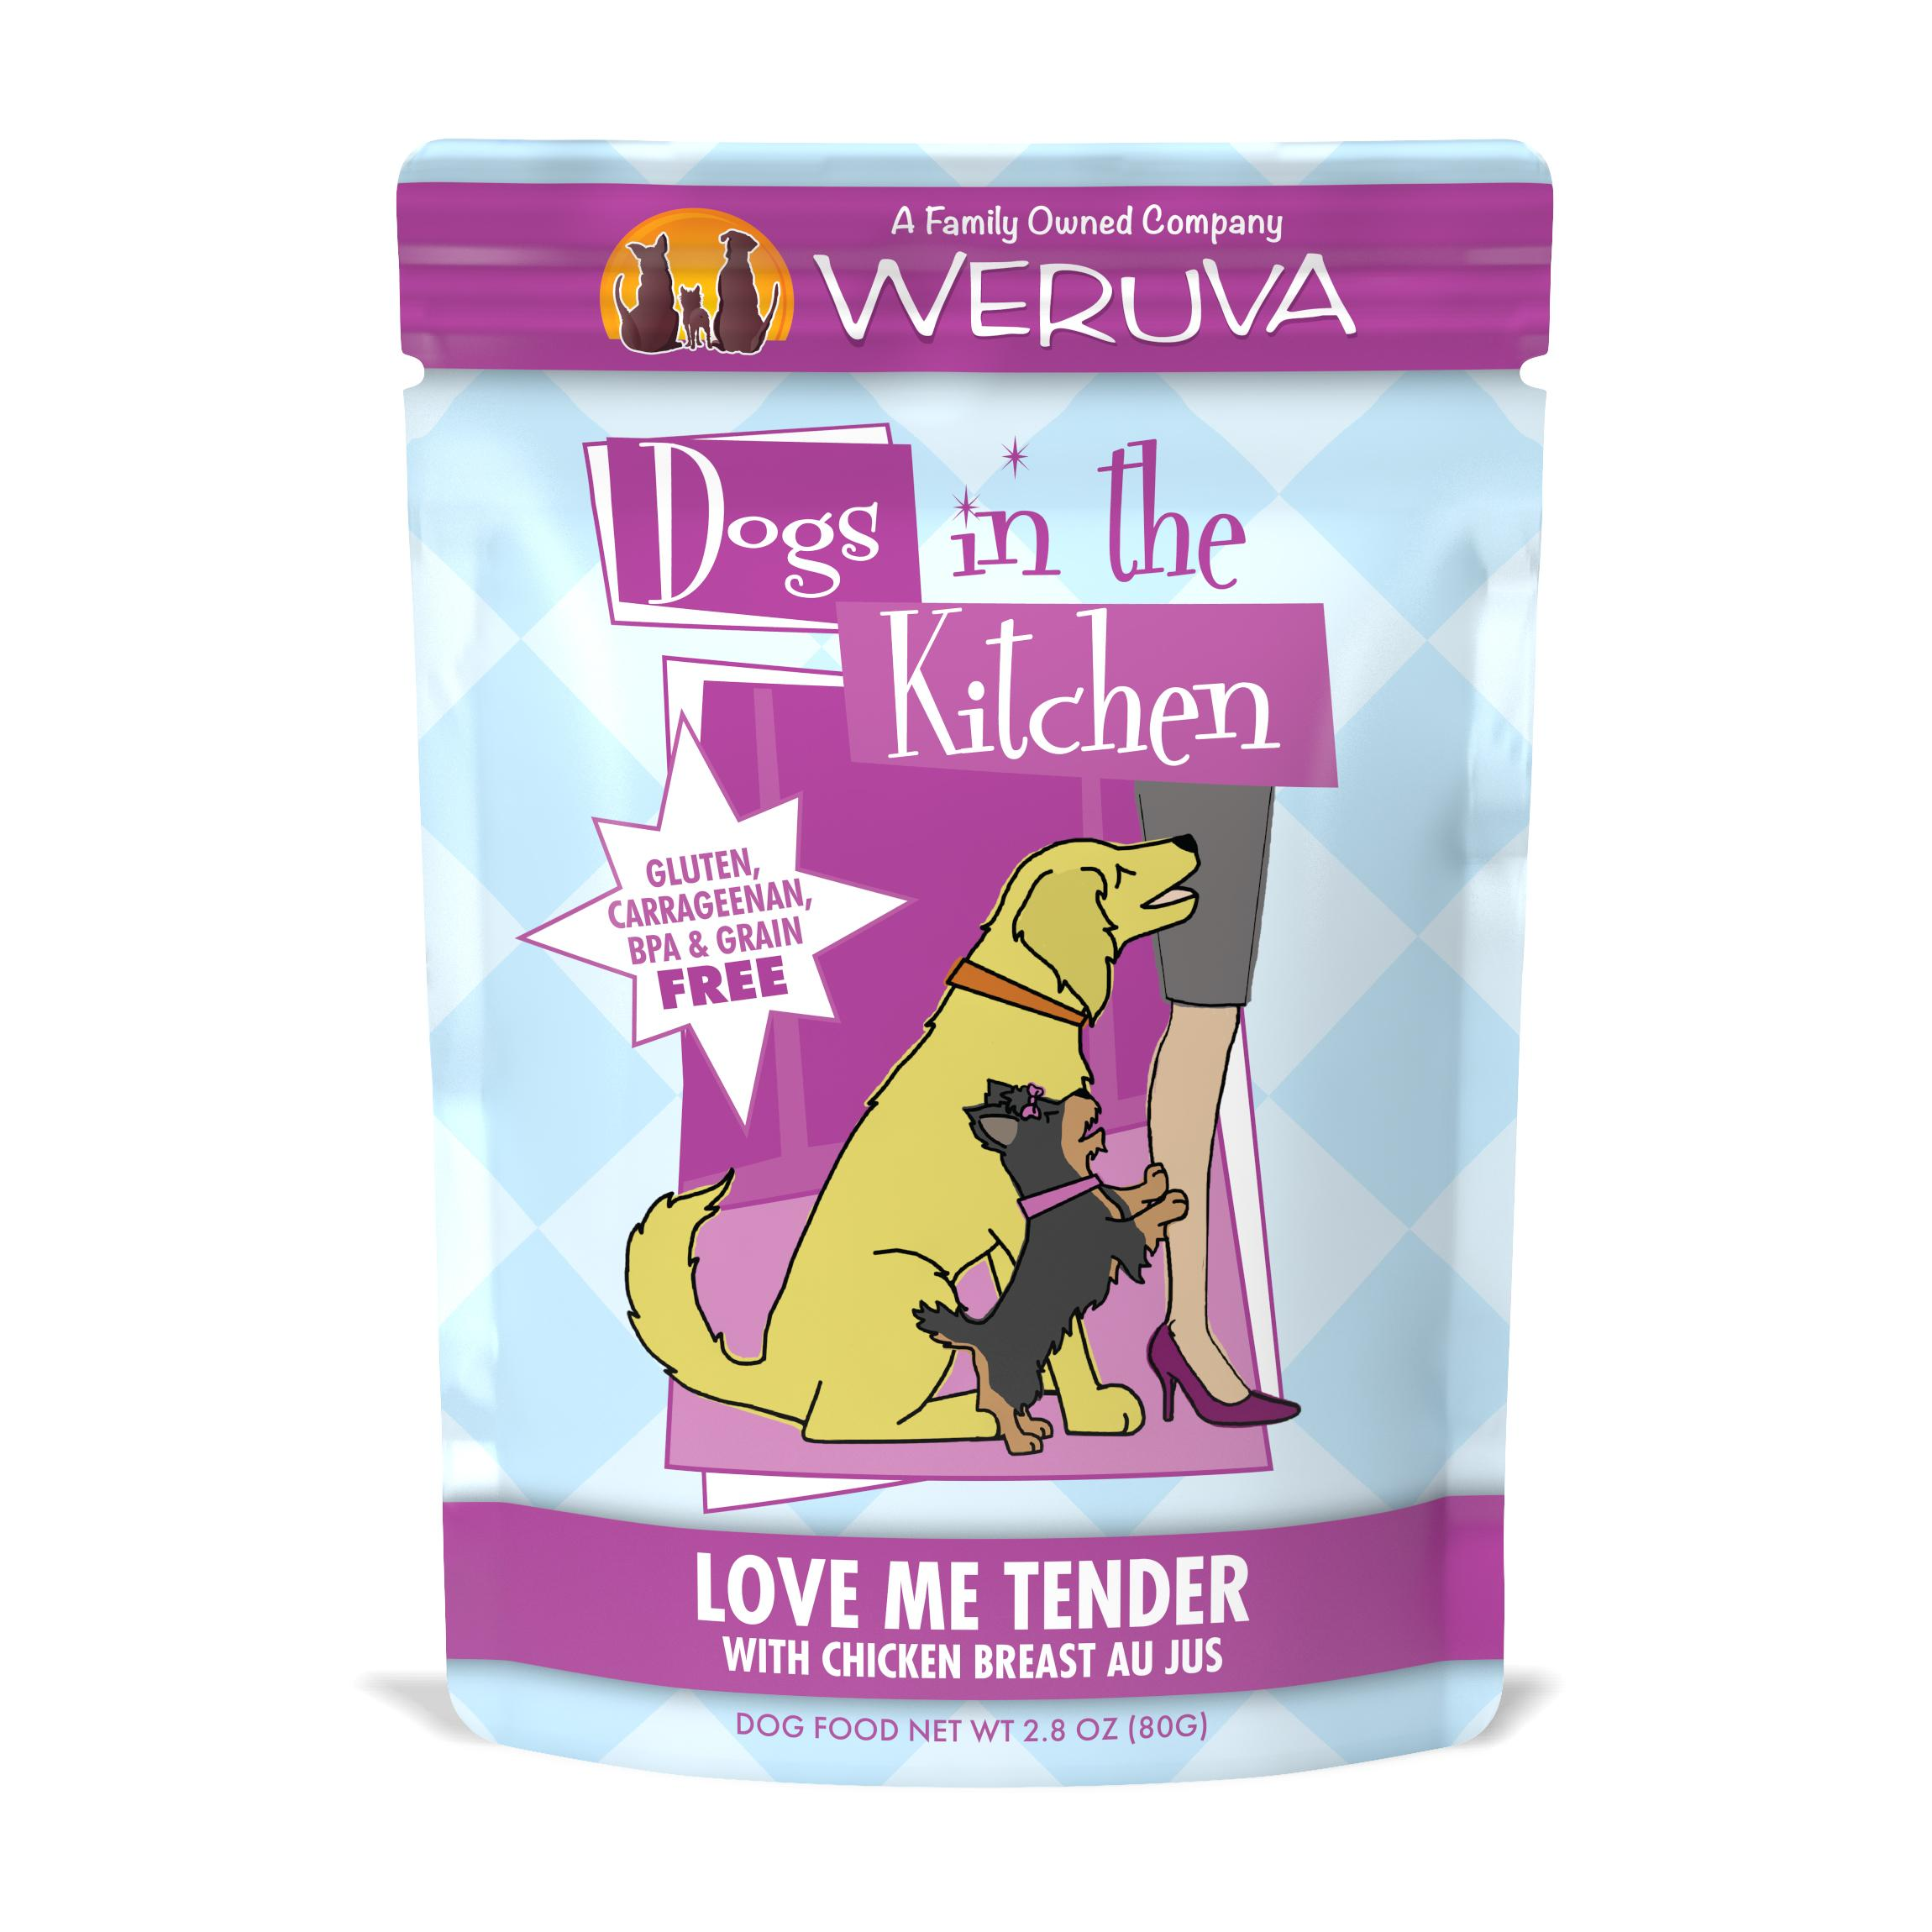 Weruva Dogs in the Kitchen Love Me Tender with Chicken Breast Au Jus Grain-Free Wet Dog Food Image